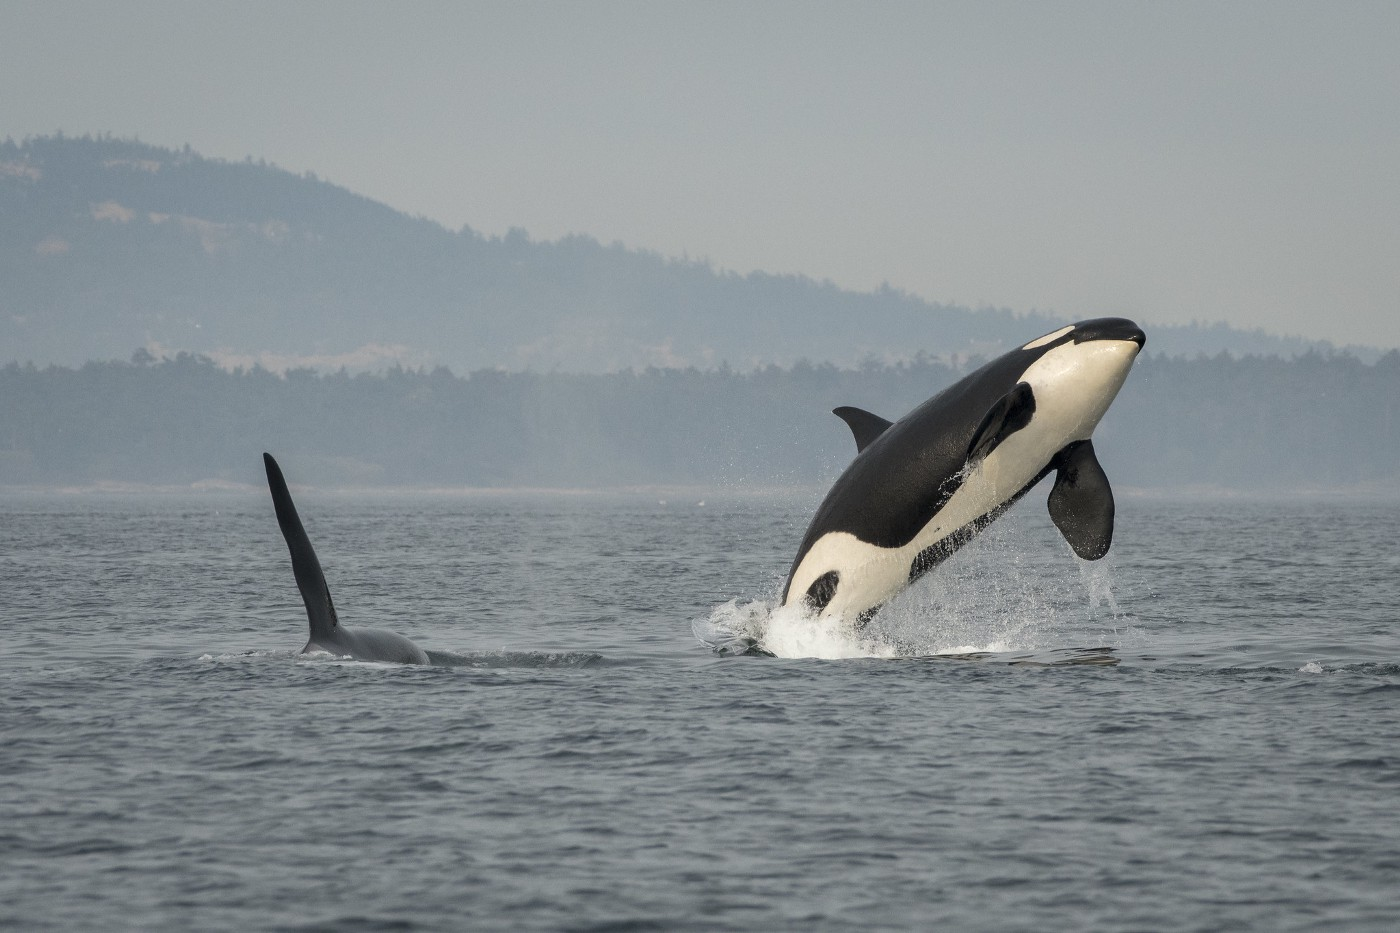 Photo of J16 Southern Resident orca breaching while J26 swims nearby. Photo from Katy Foster/ NOAA Fisheres.